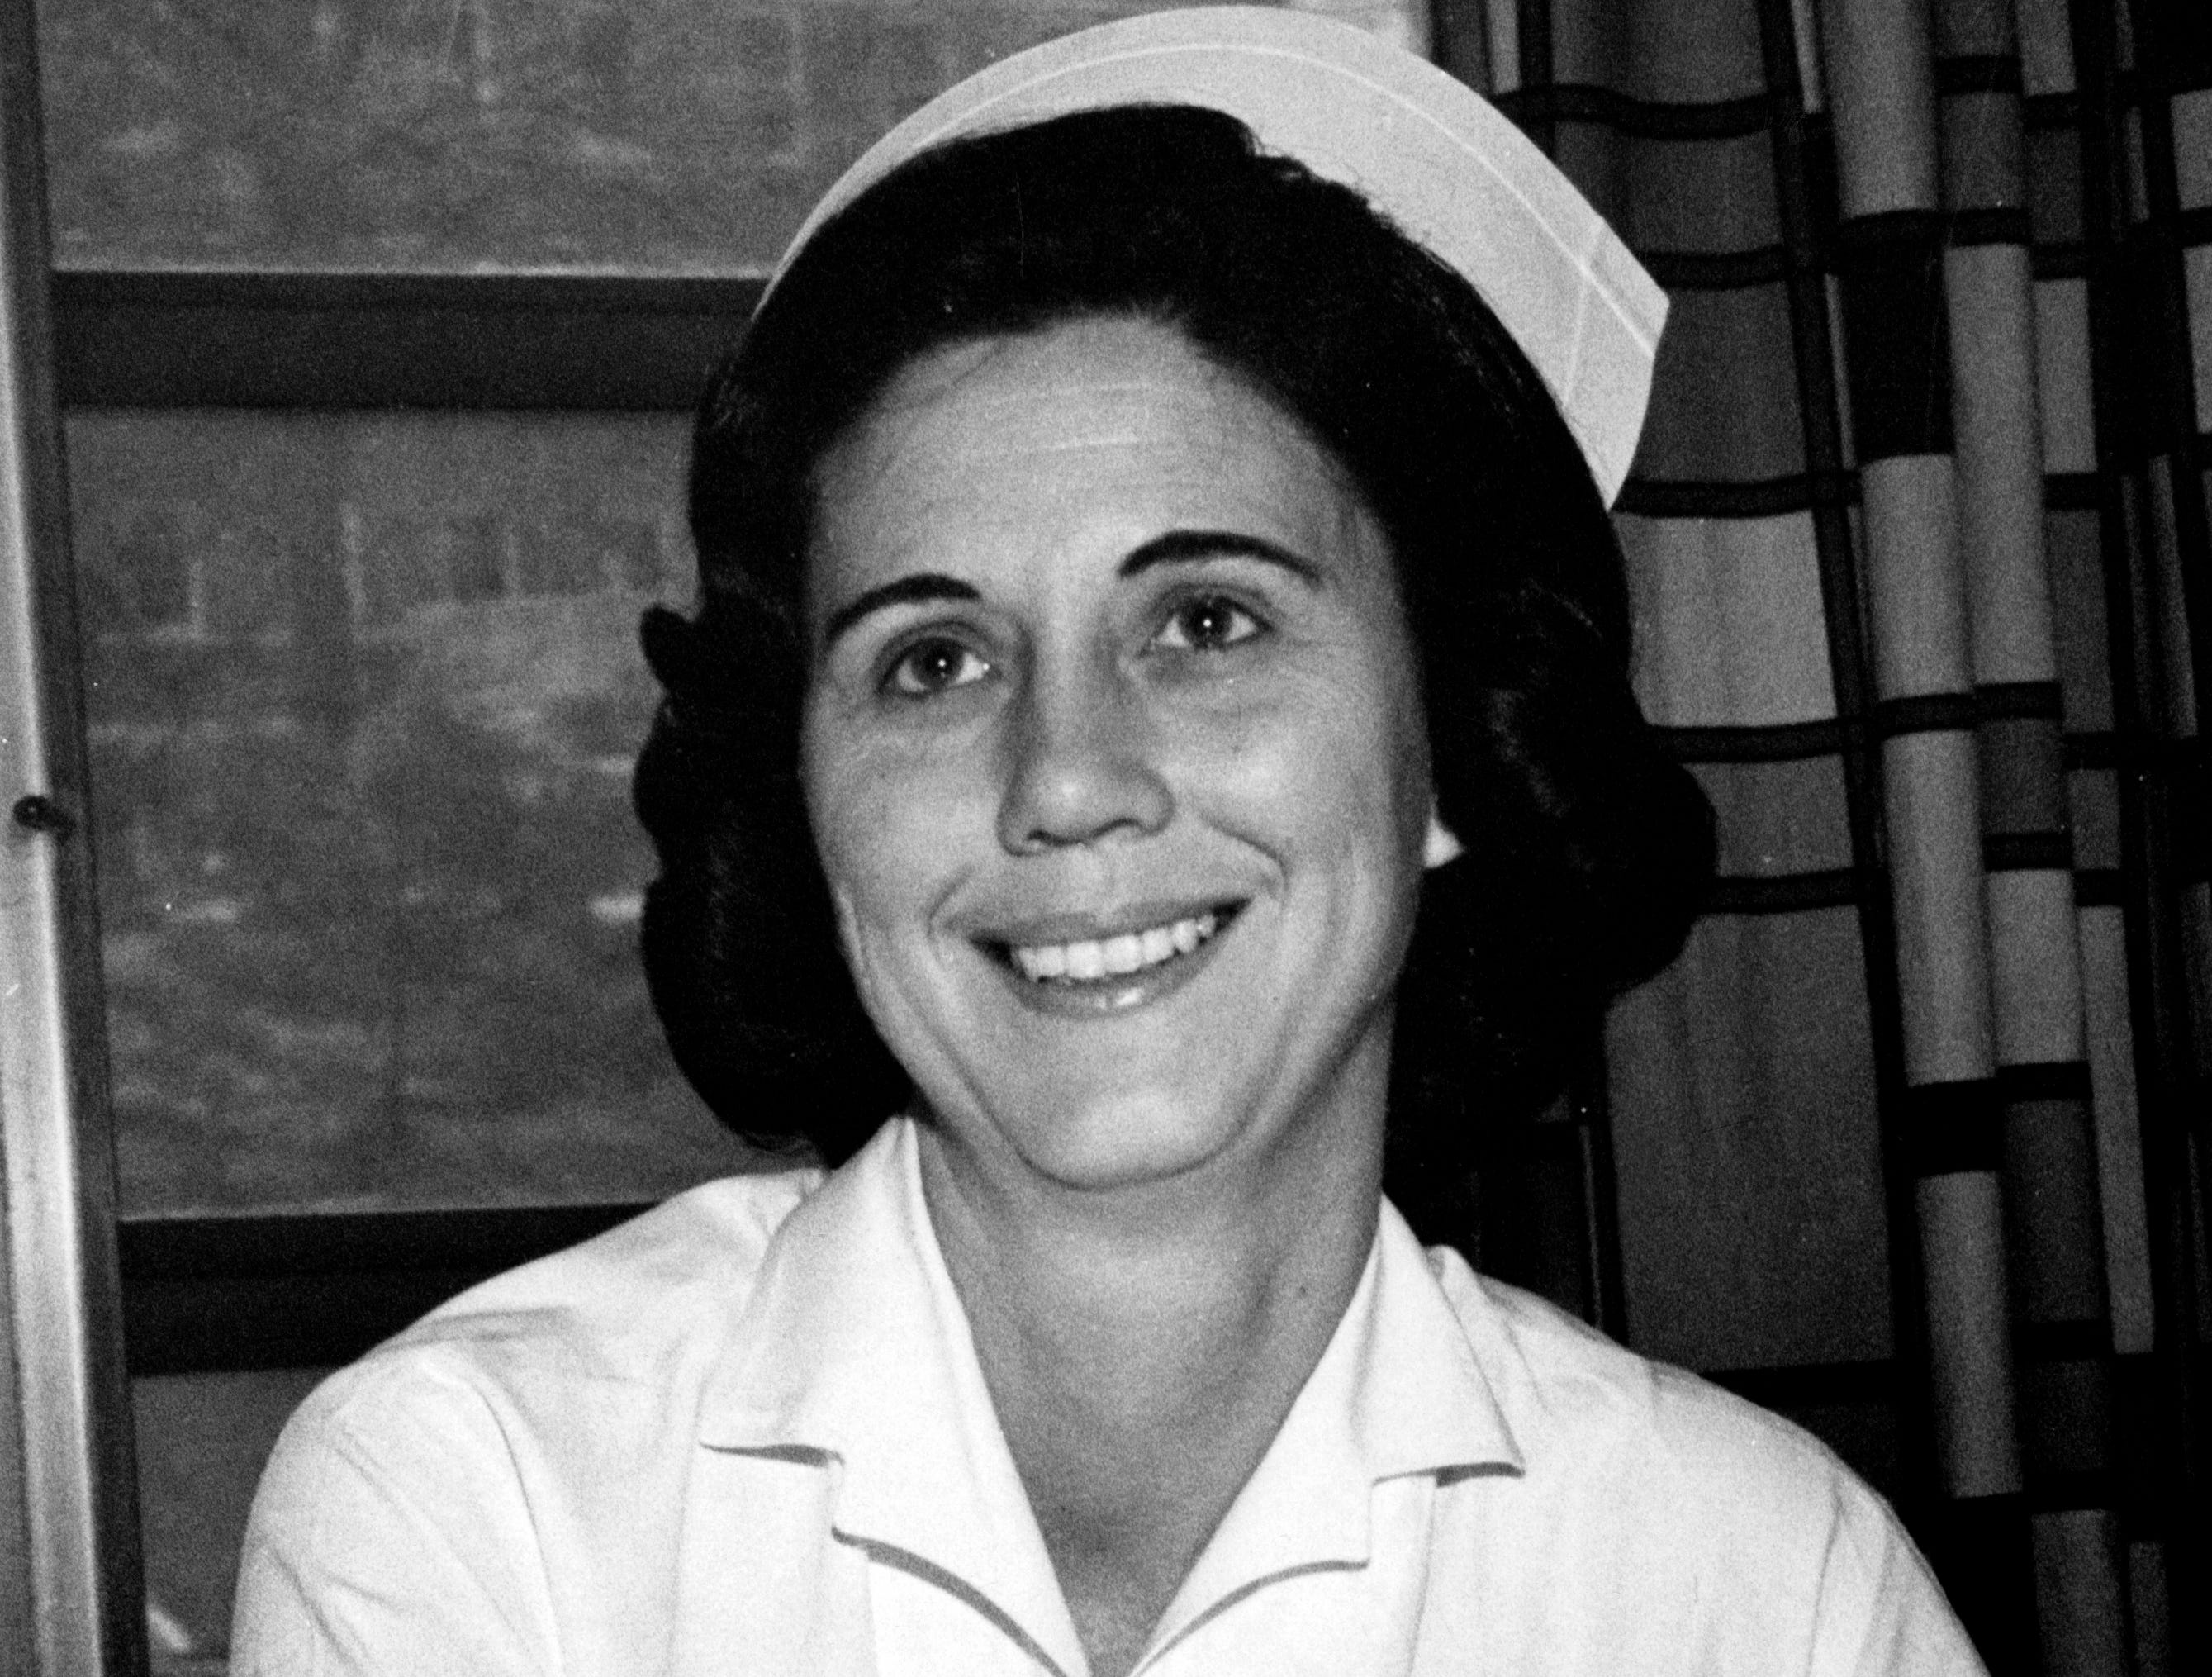 Margaret Heins, RN, served as director at St. Mary's School of Nursing from 1962 until it closed in 1988.